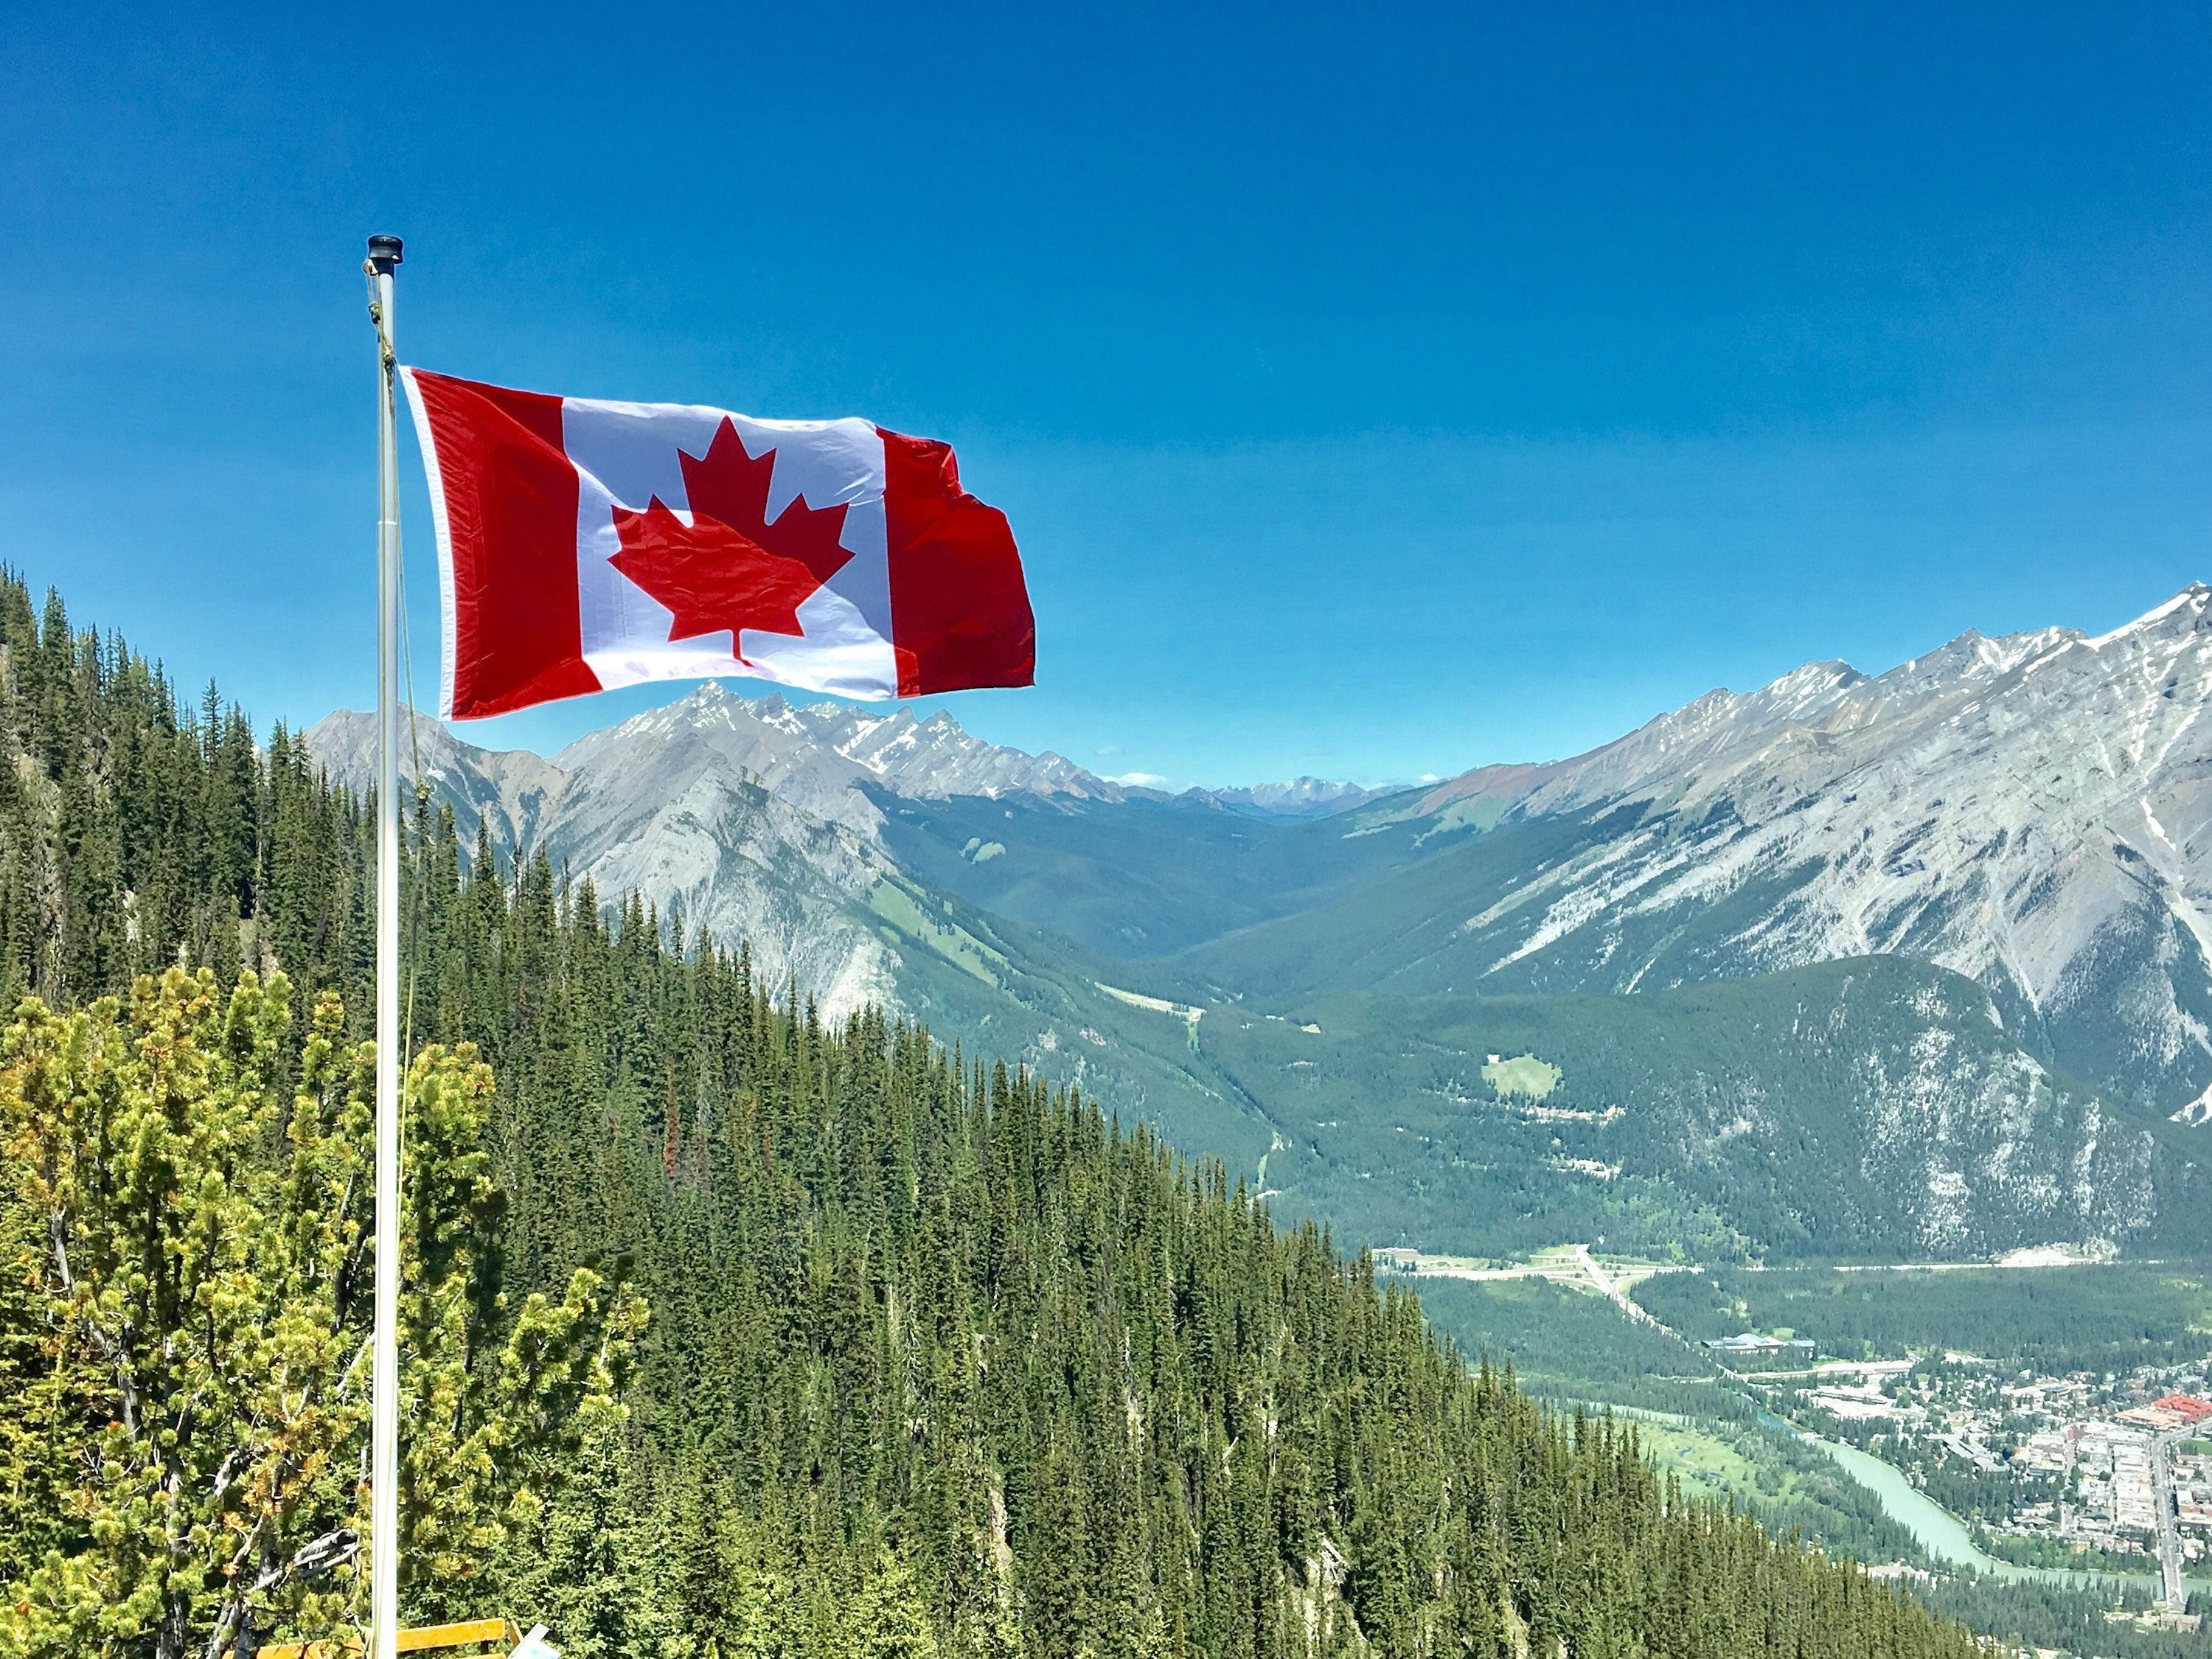 Canada Day isn't for me — and it's not for many others